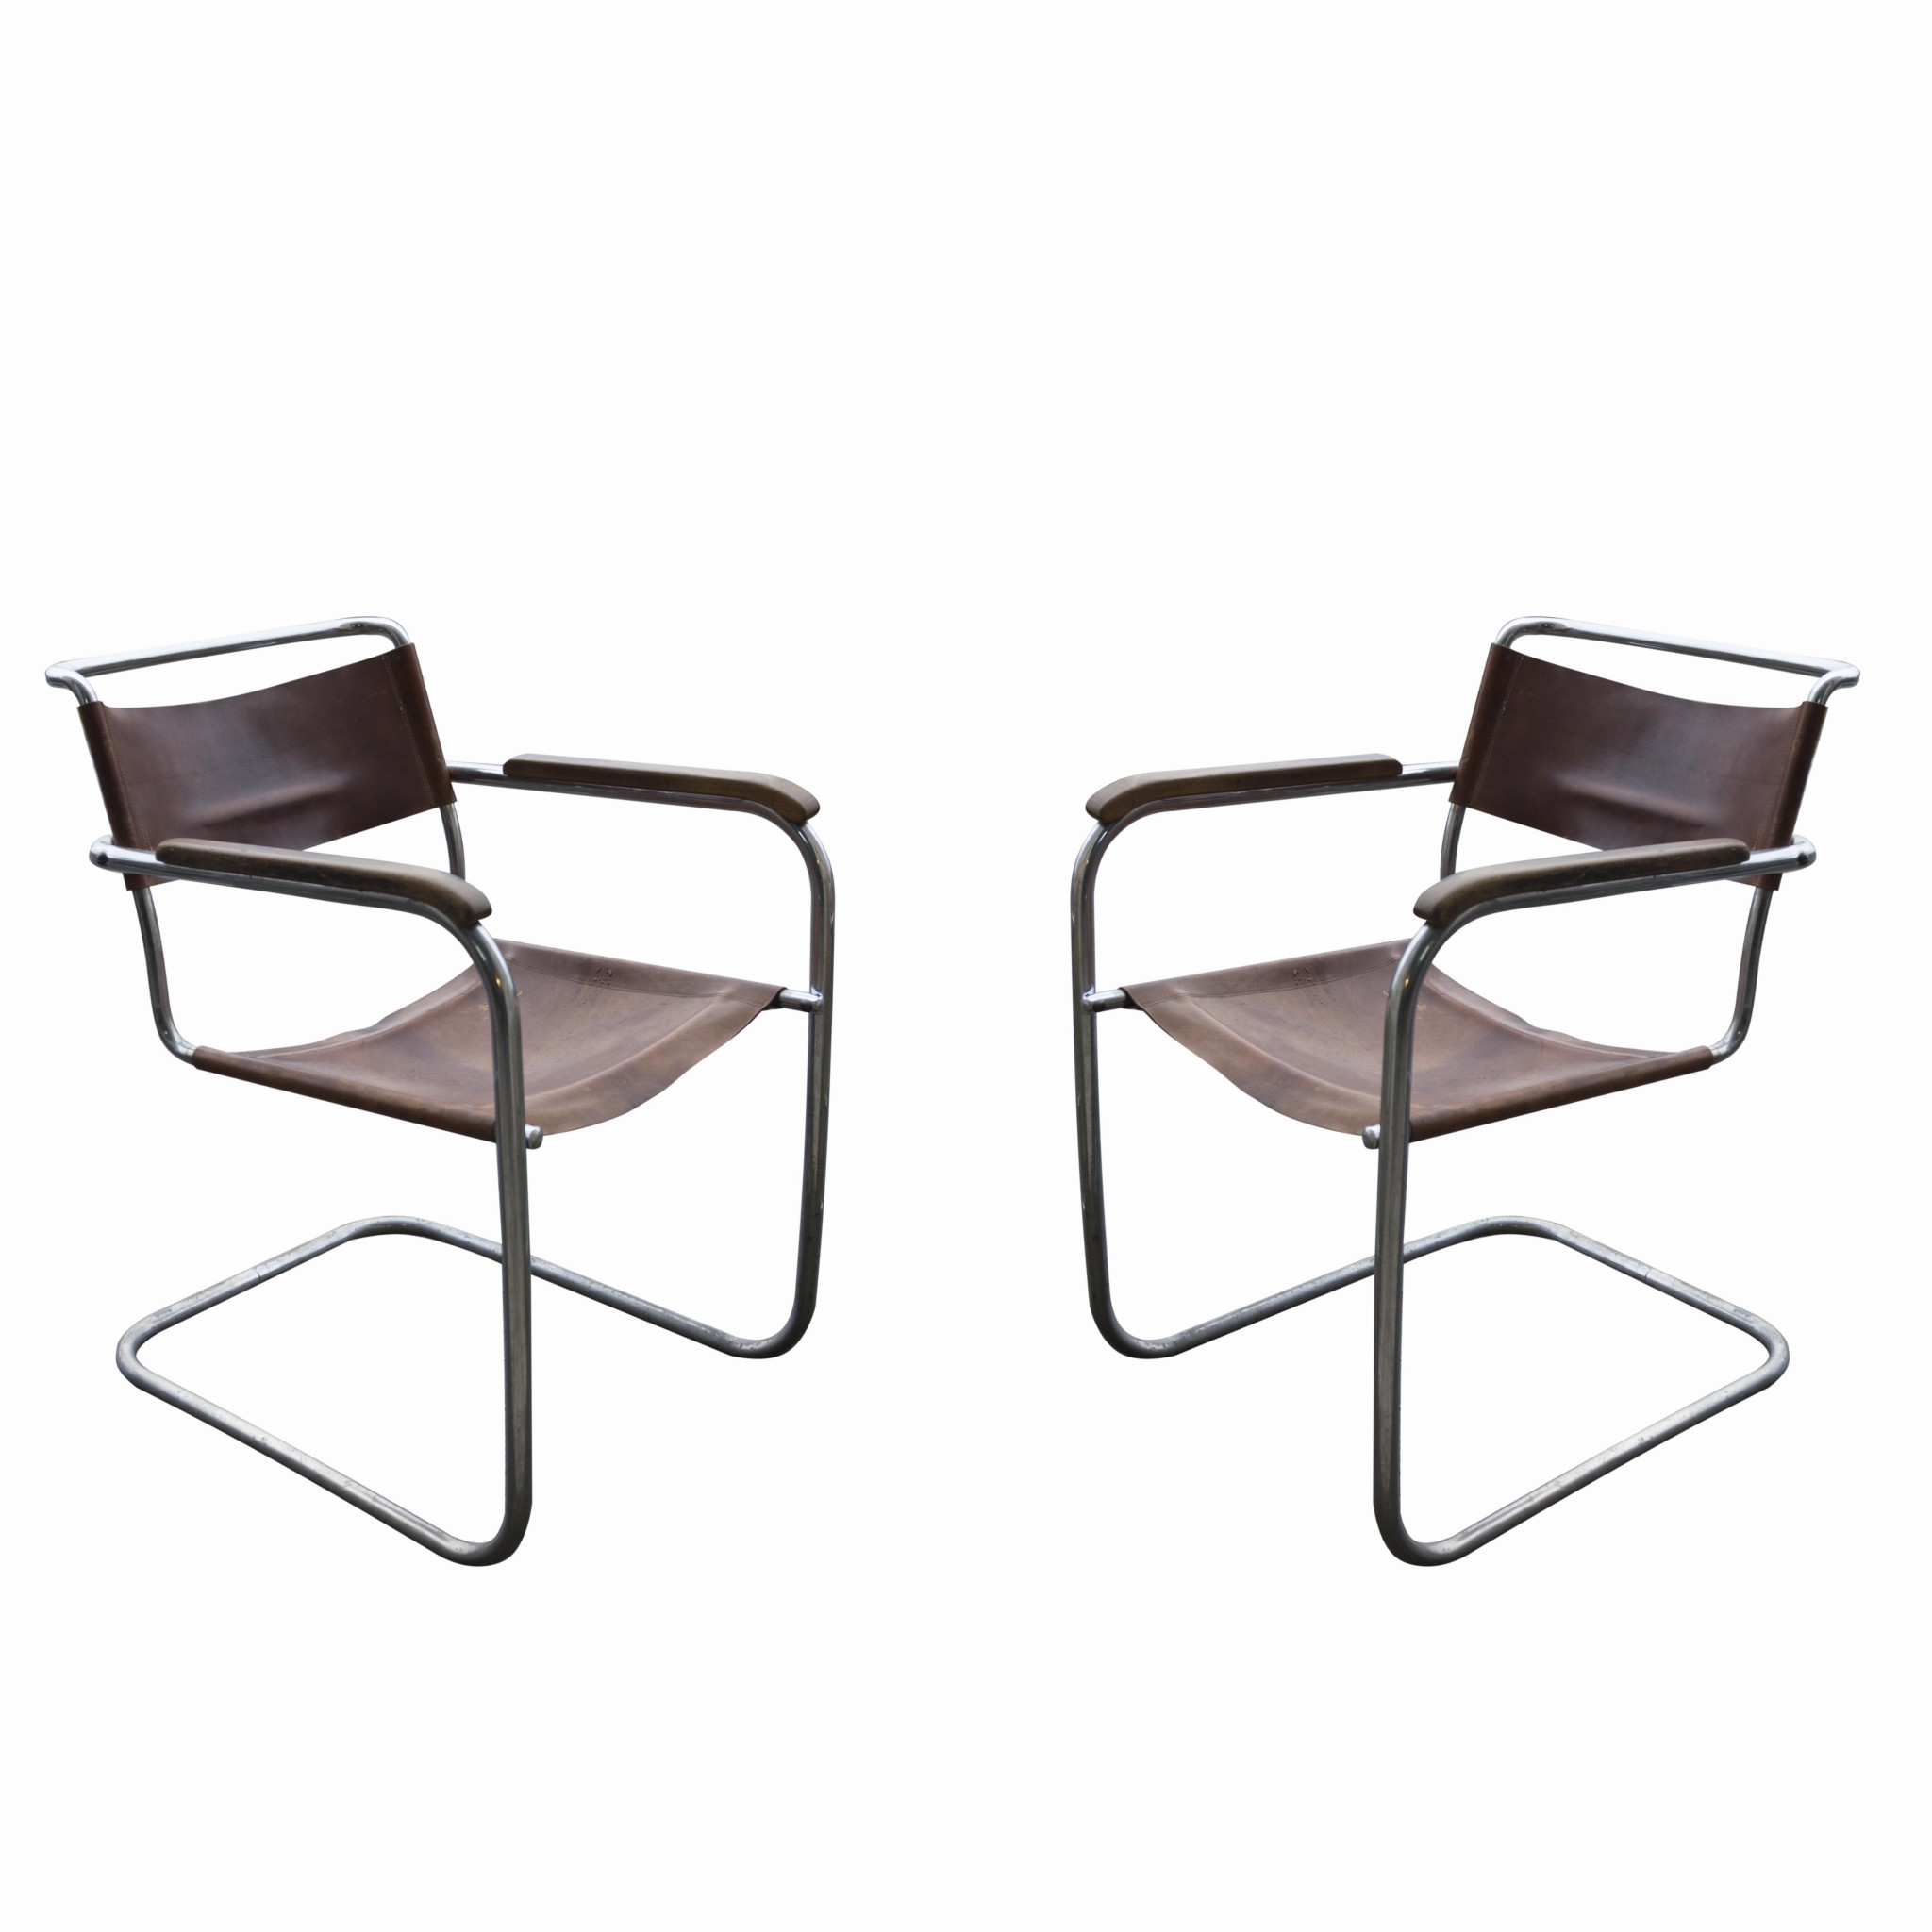 Marcel breuer chair pair of tan leather marcel breuer for Chaise wassily